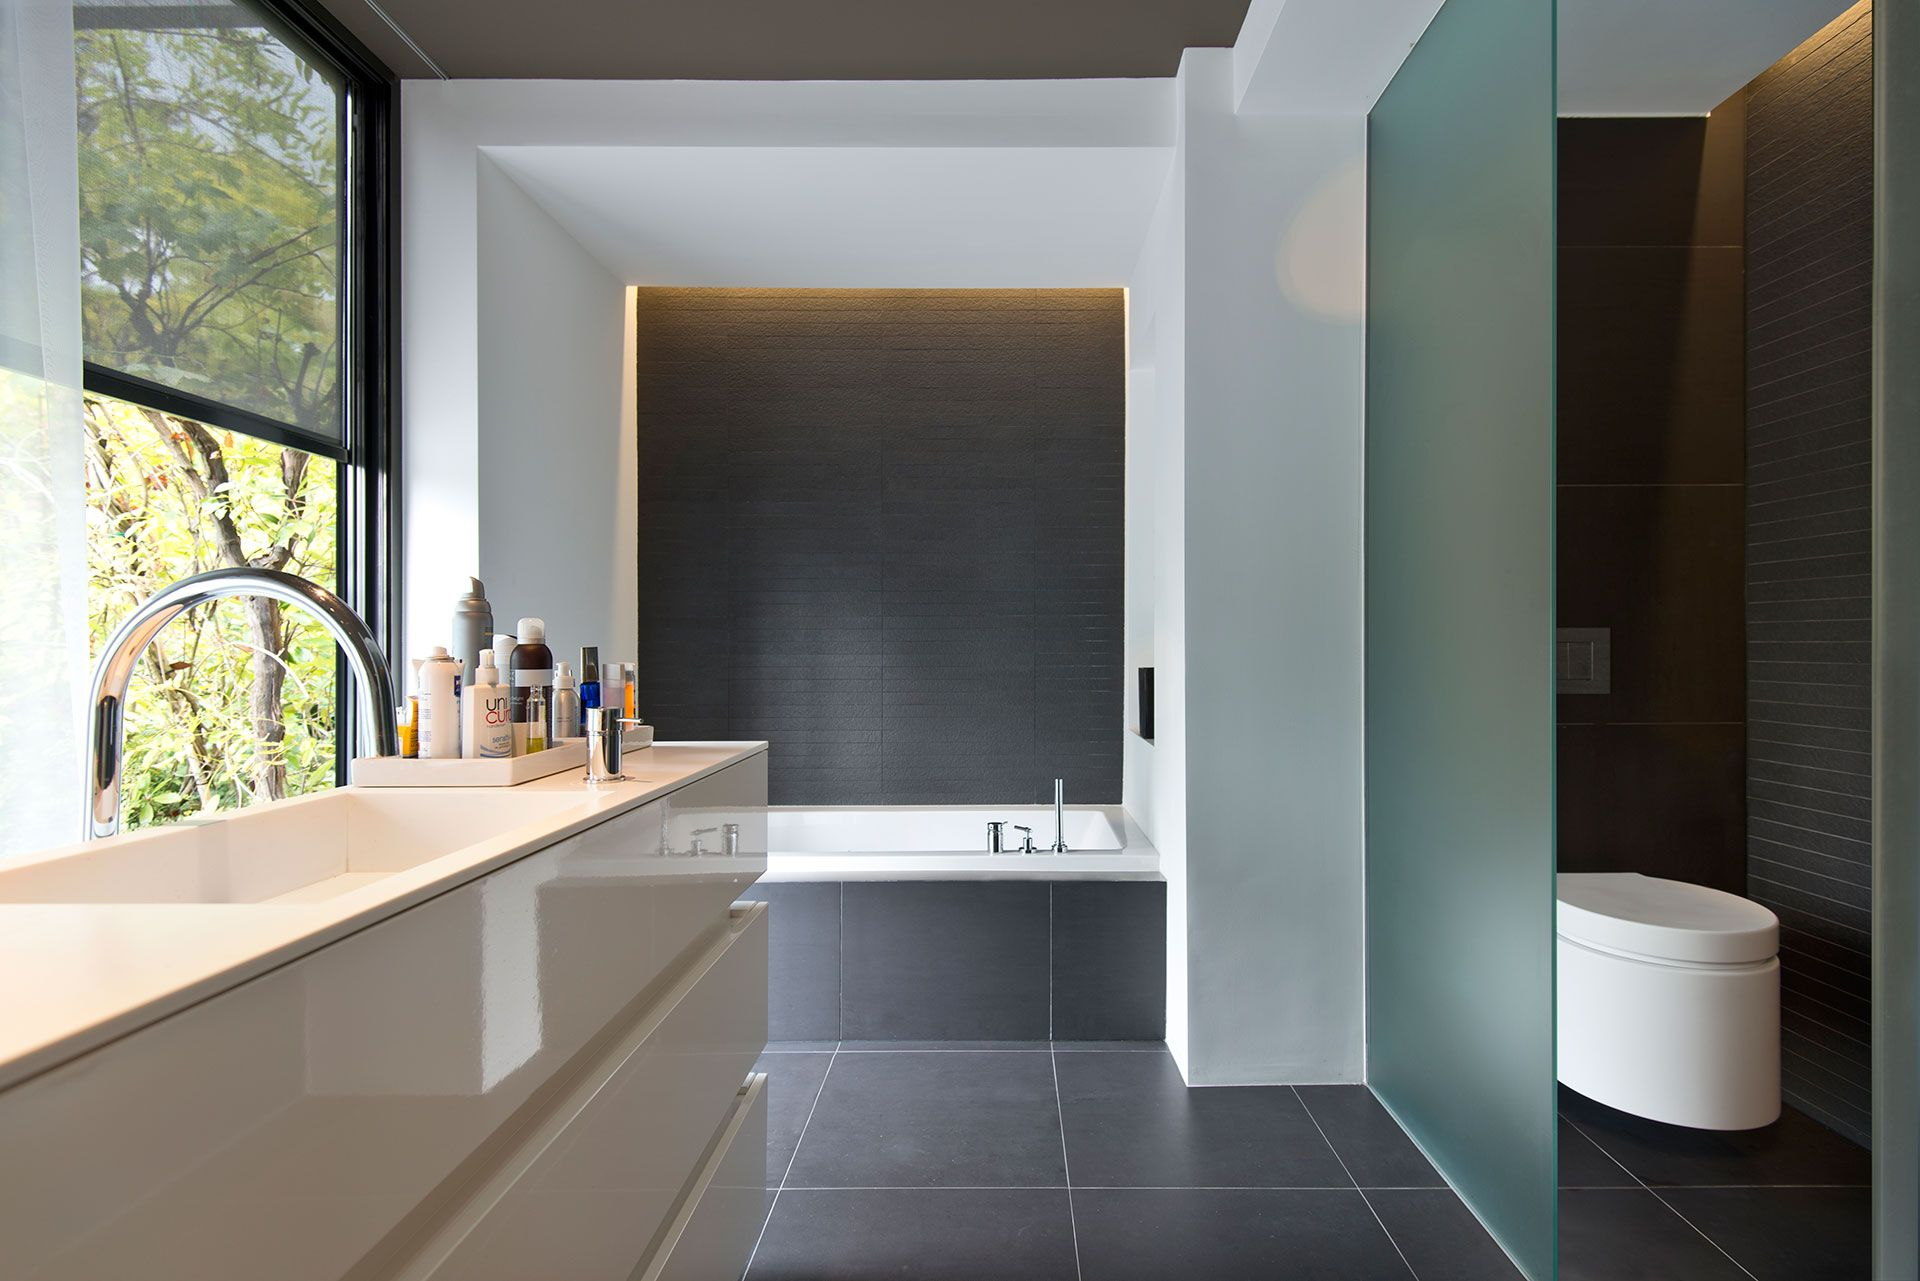 Studio kees marcelis bathroom design studio